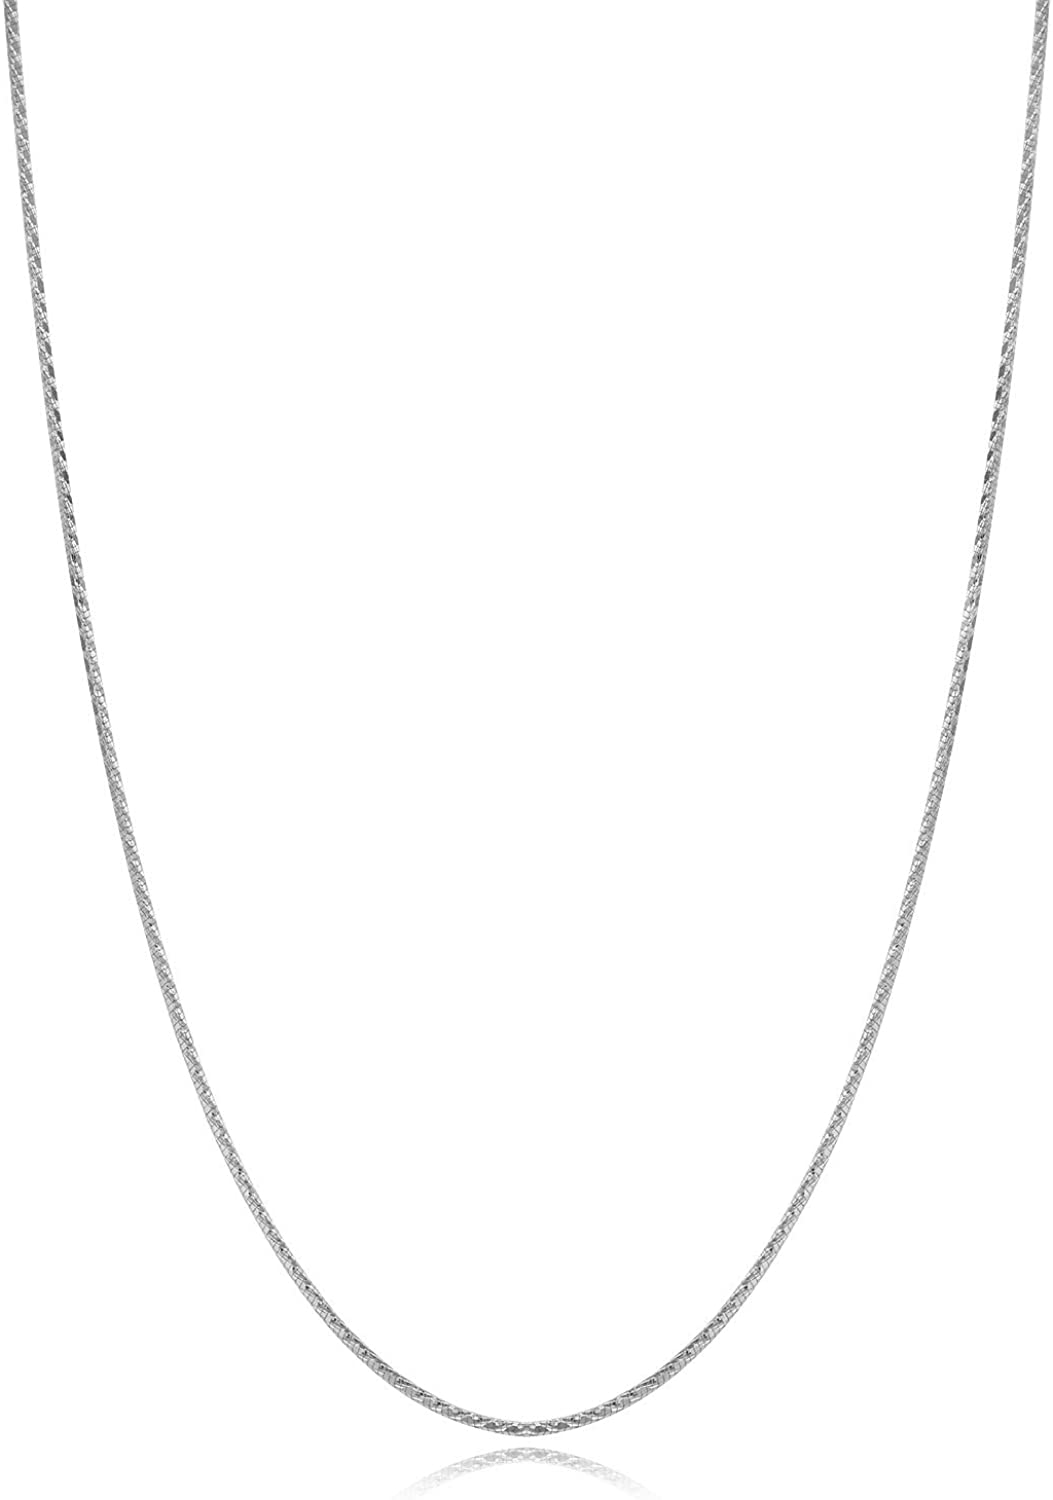 HAESOOL Sterling Silver Simple Chains NE005 Girls W Necklace for 67% OFF At the price of surprise of fixed price